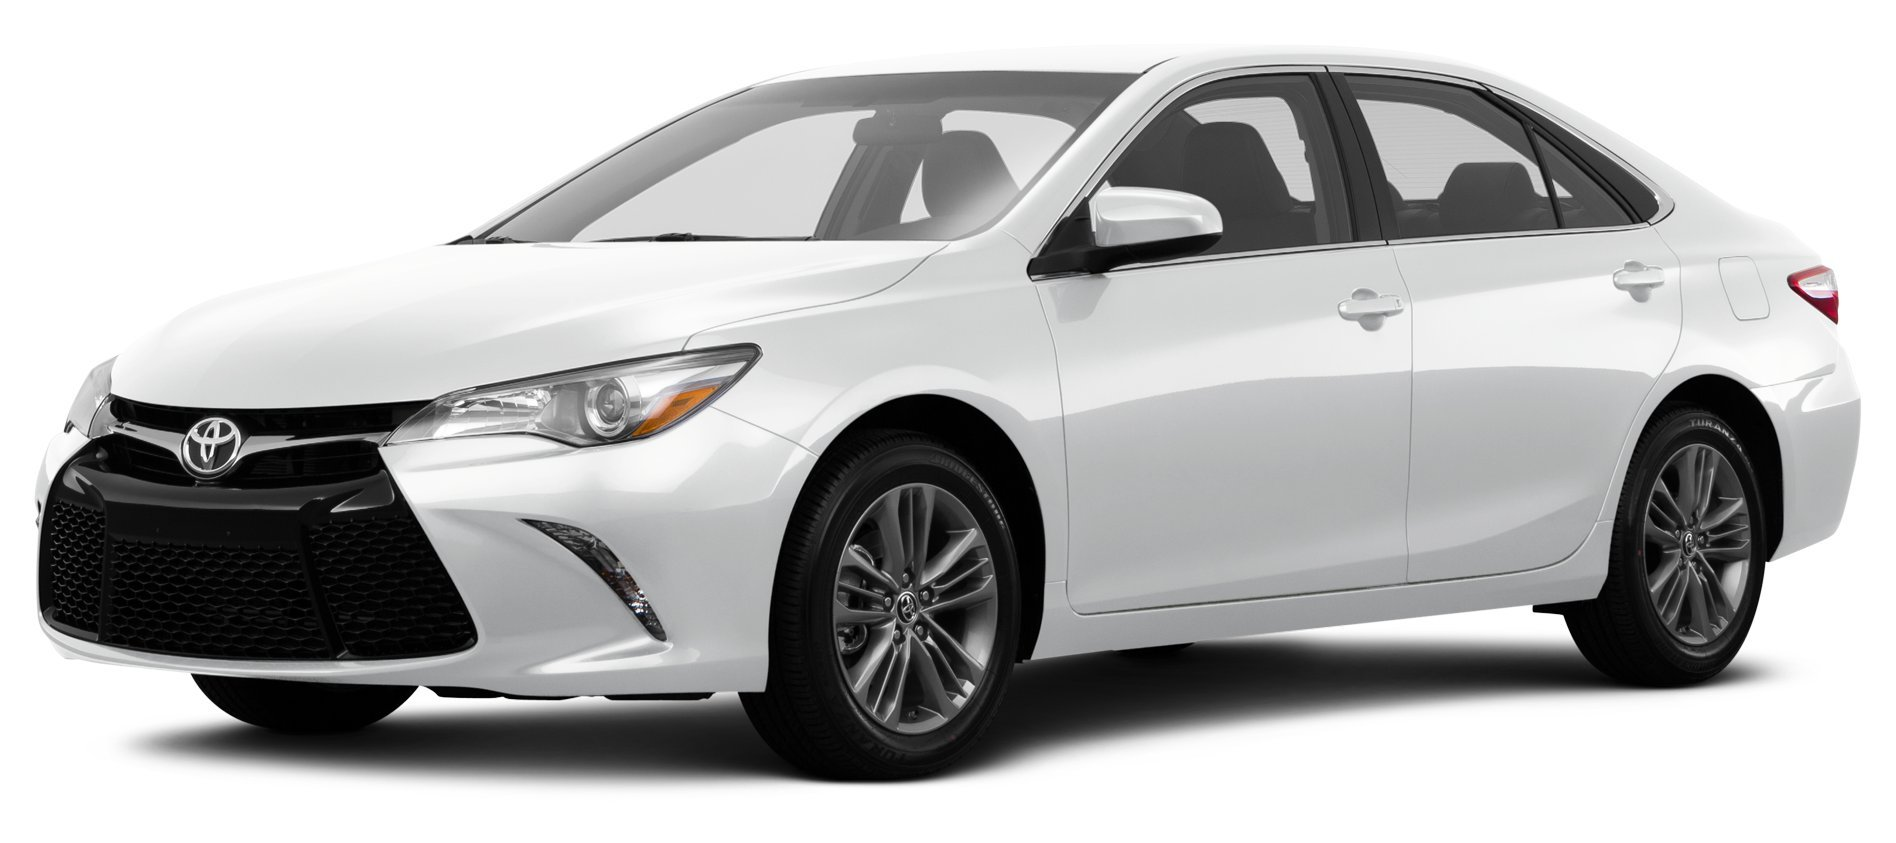 ... 2016 Toyota Camry SE, 4-Door Sedan 4-Cylinder Automatic Transmission (SE